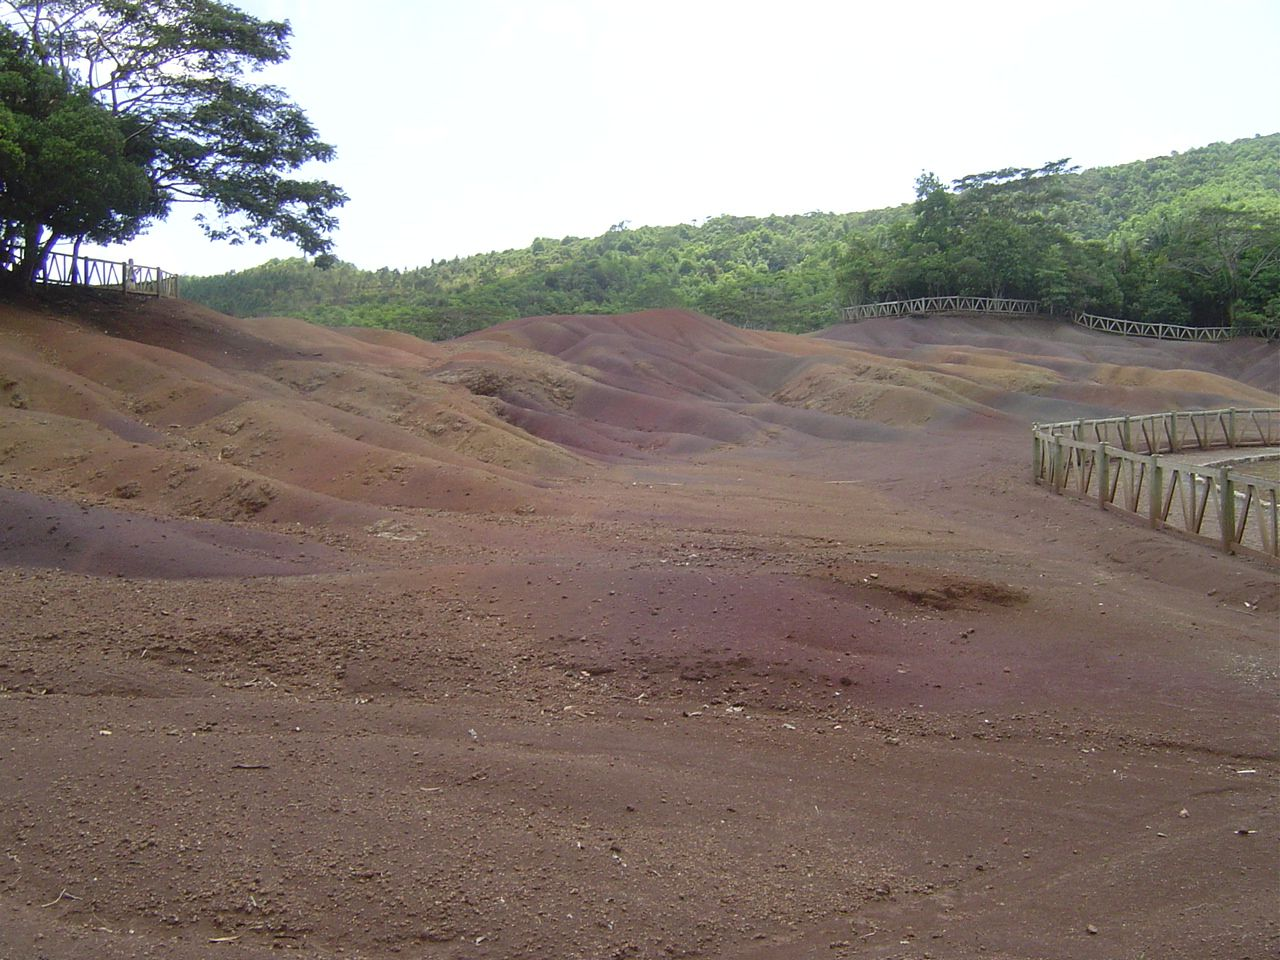 Famous seven coloured sands - the Chamarel